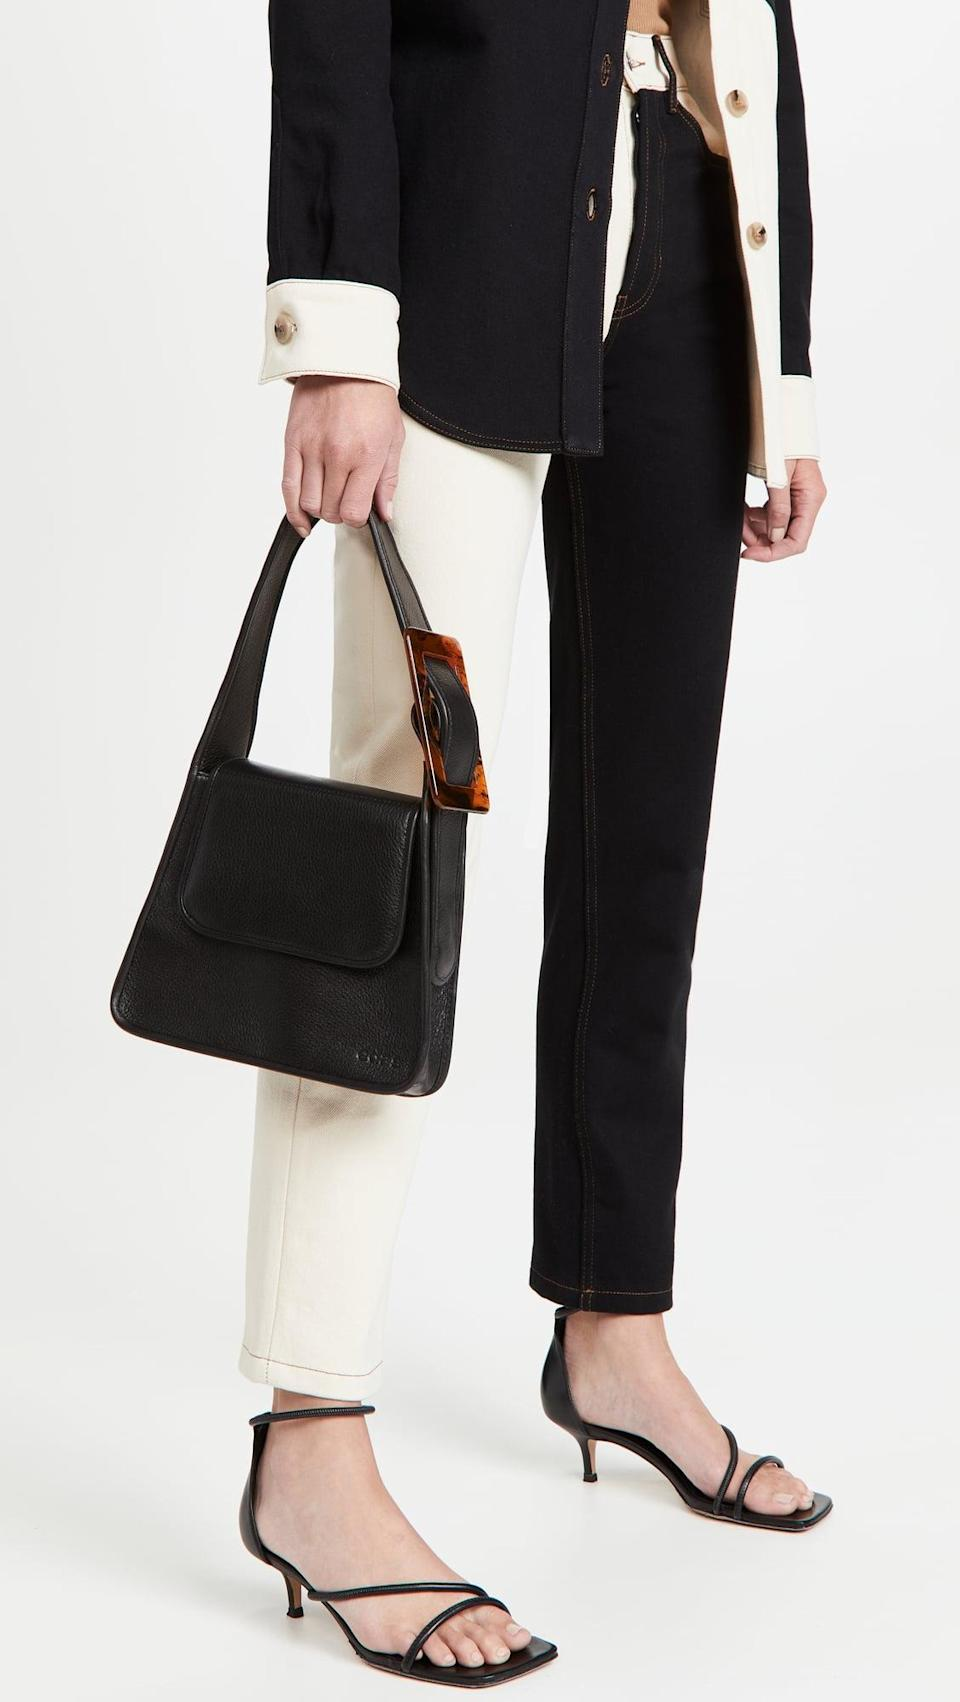 <p>We small little bags for dinner dates, and this <span>EDAS Yshaia Bag</span> ($435) fits the bill. It'll go with any look from trousers to dresses.</p>